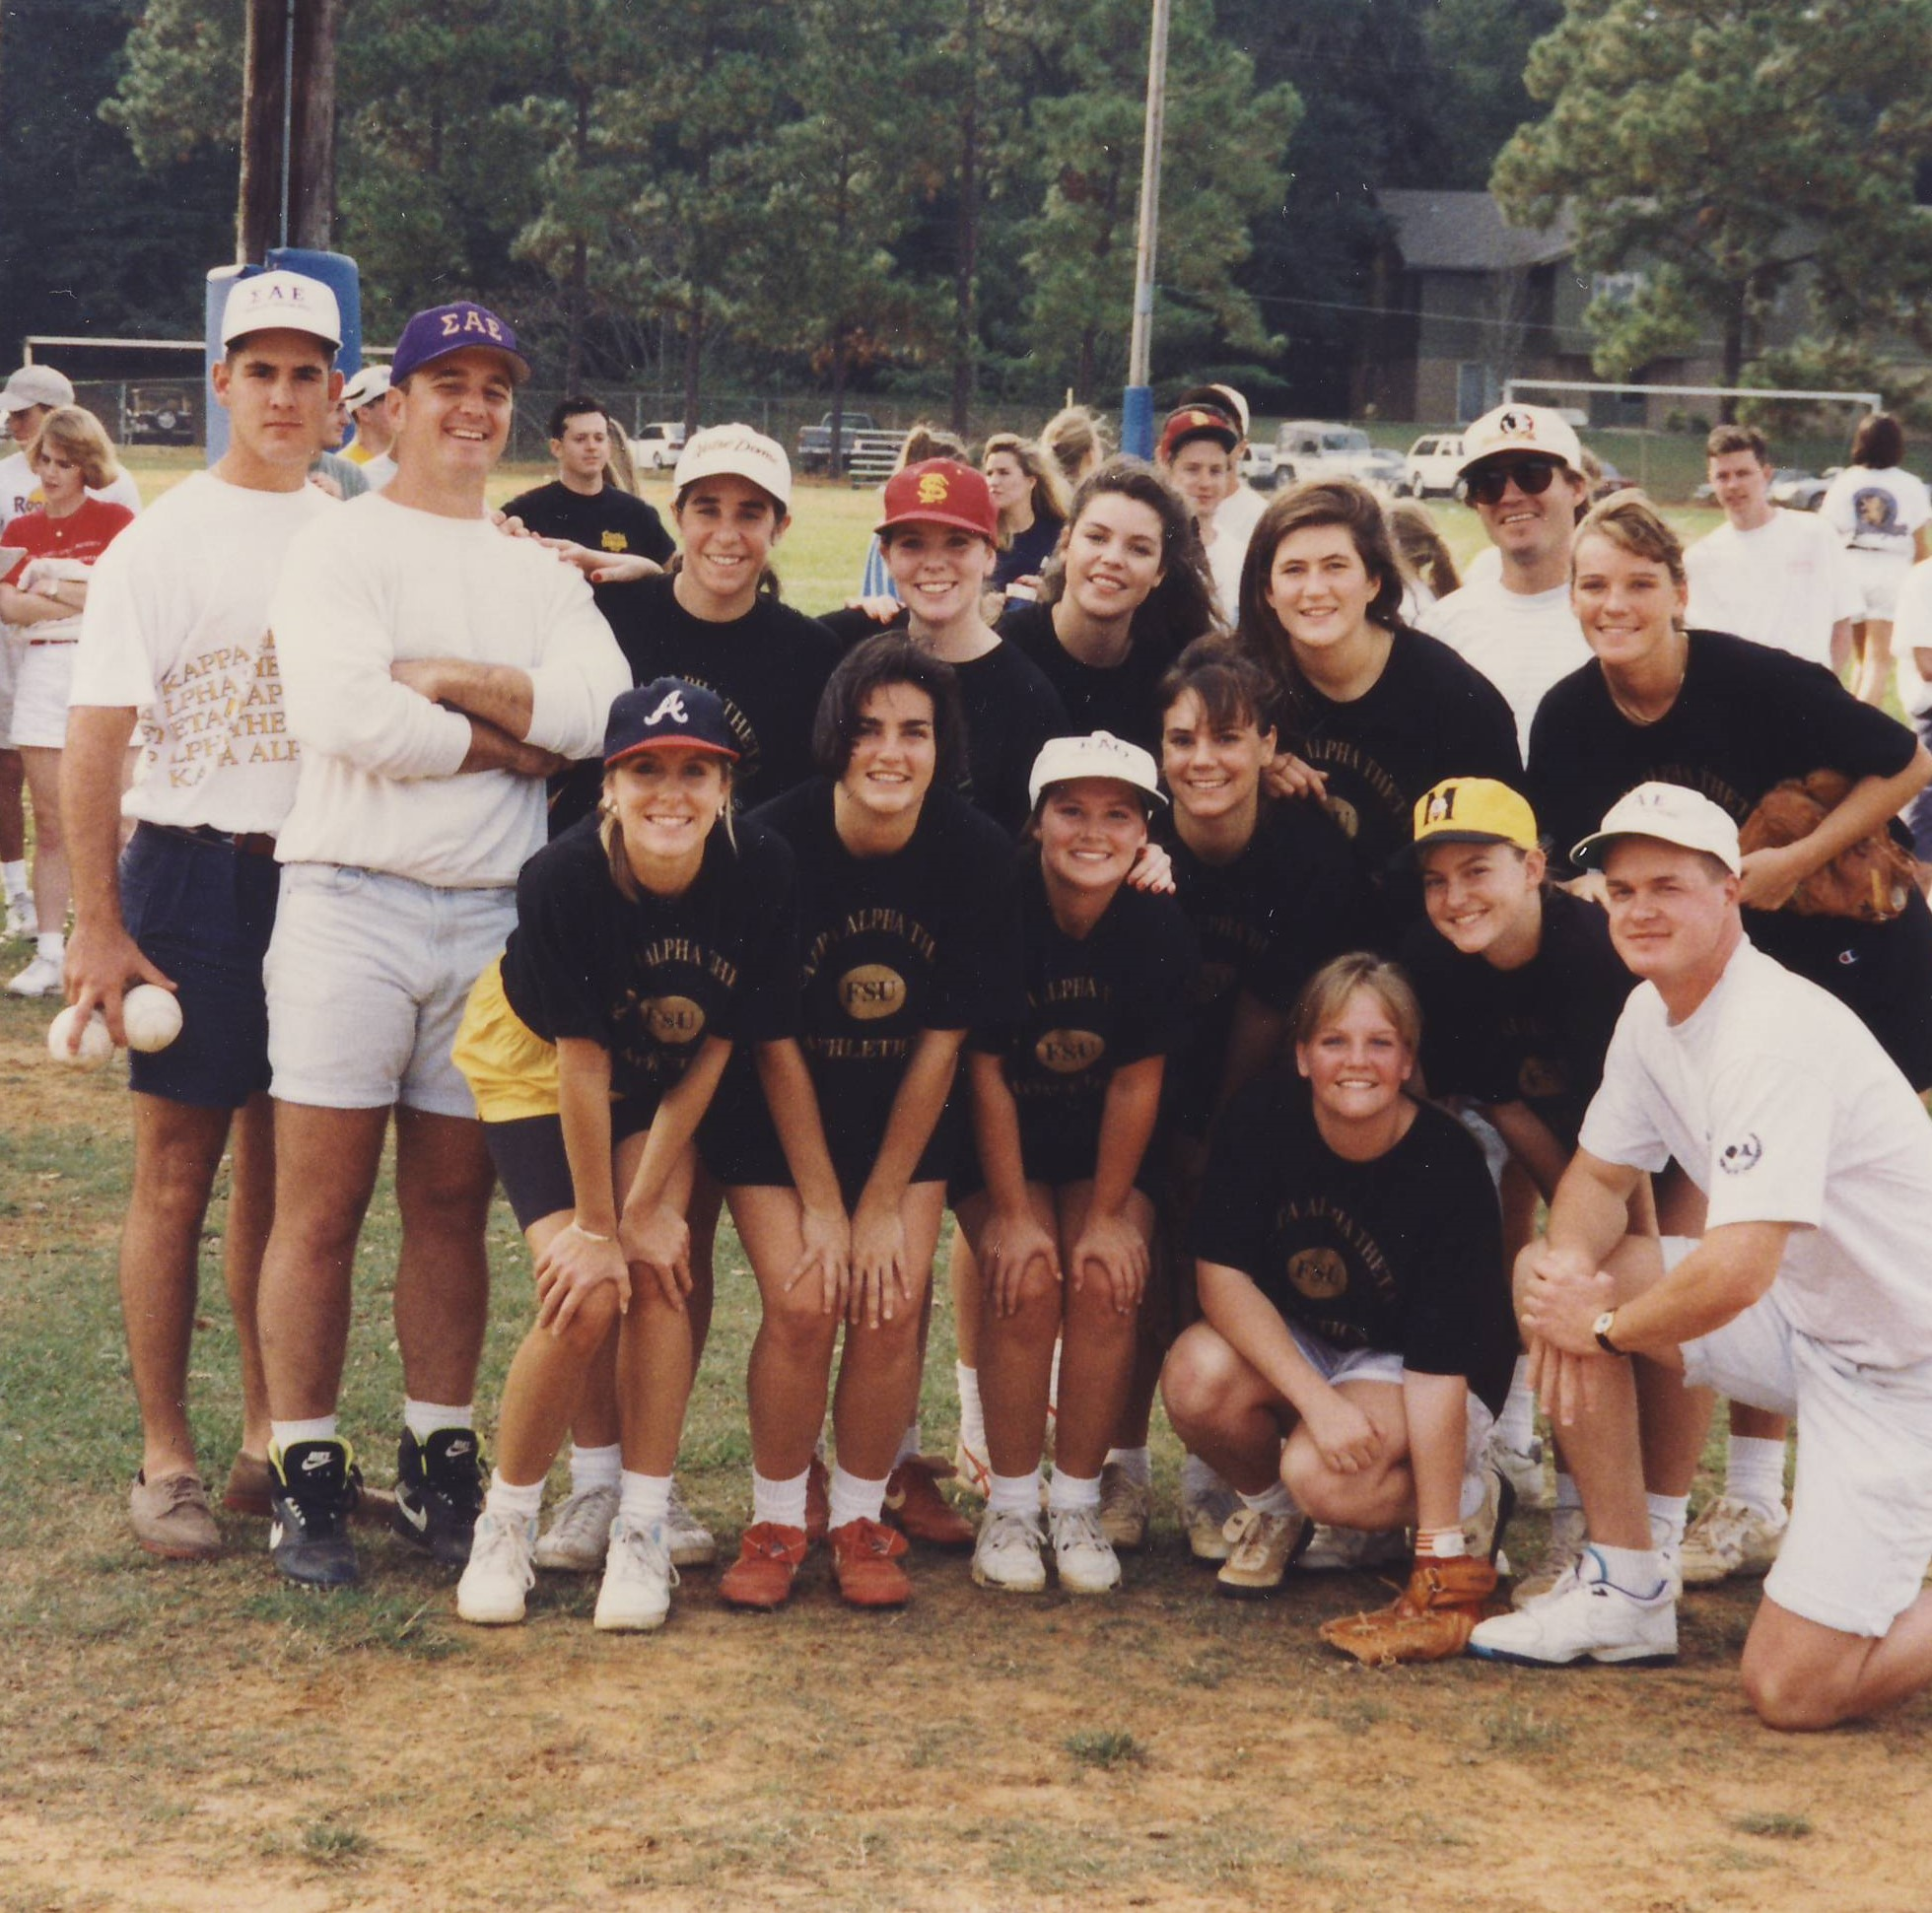 1993 Field of Dreams-team KAO.JPG